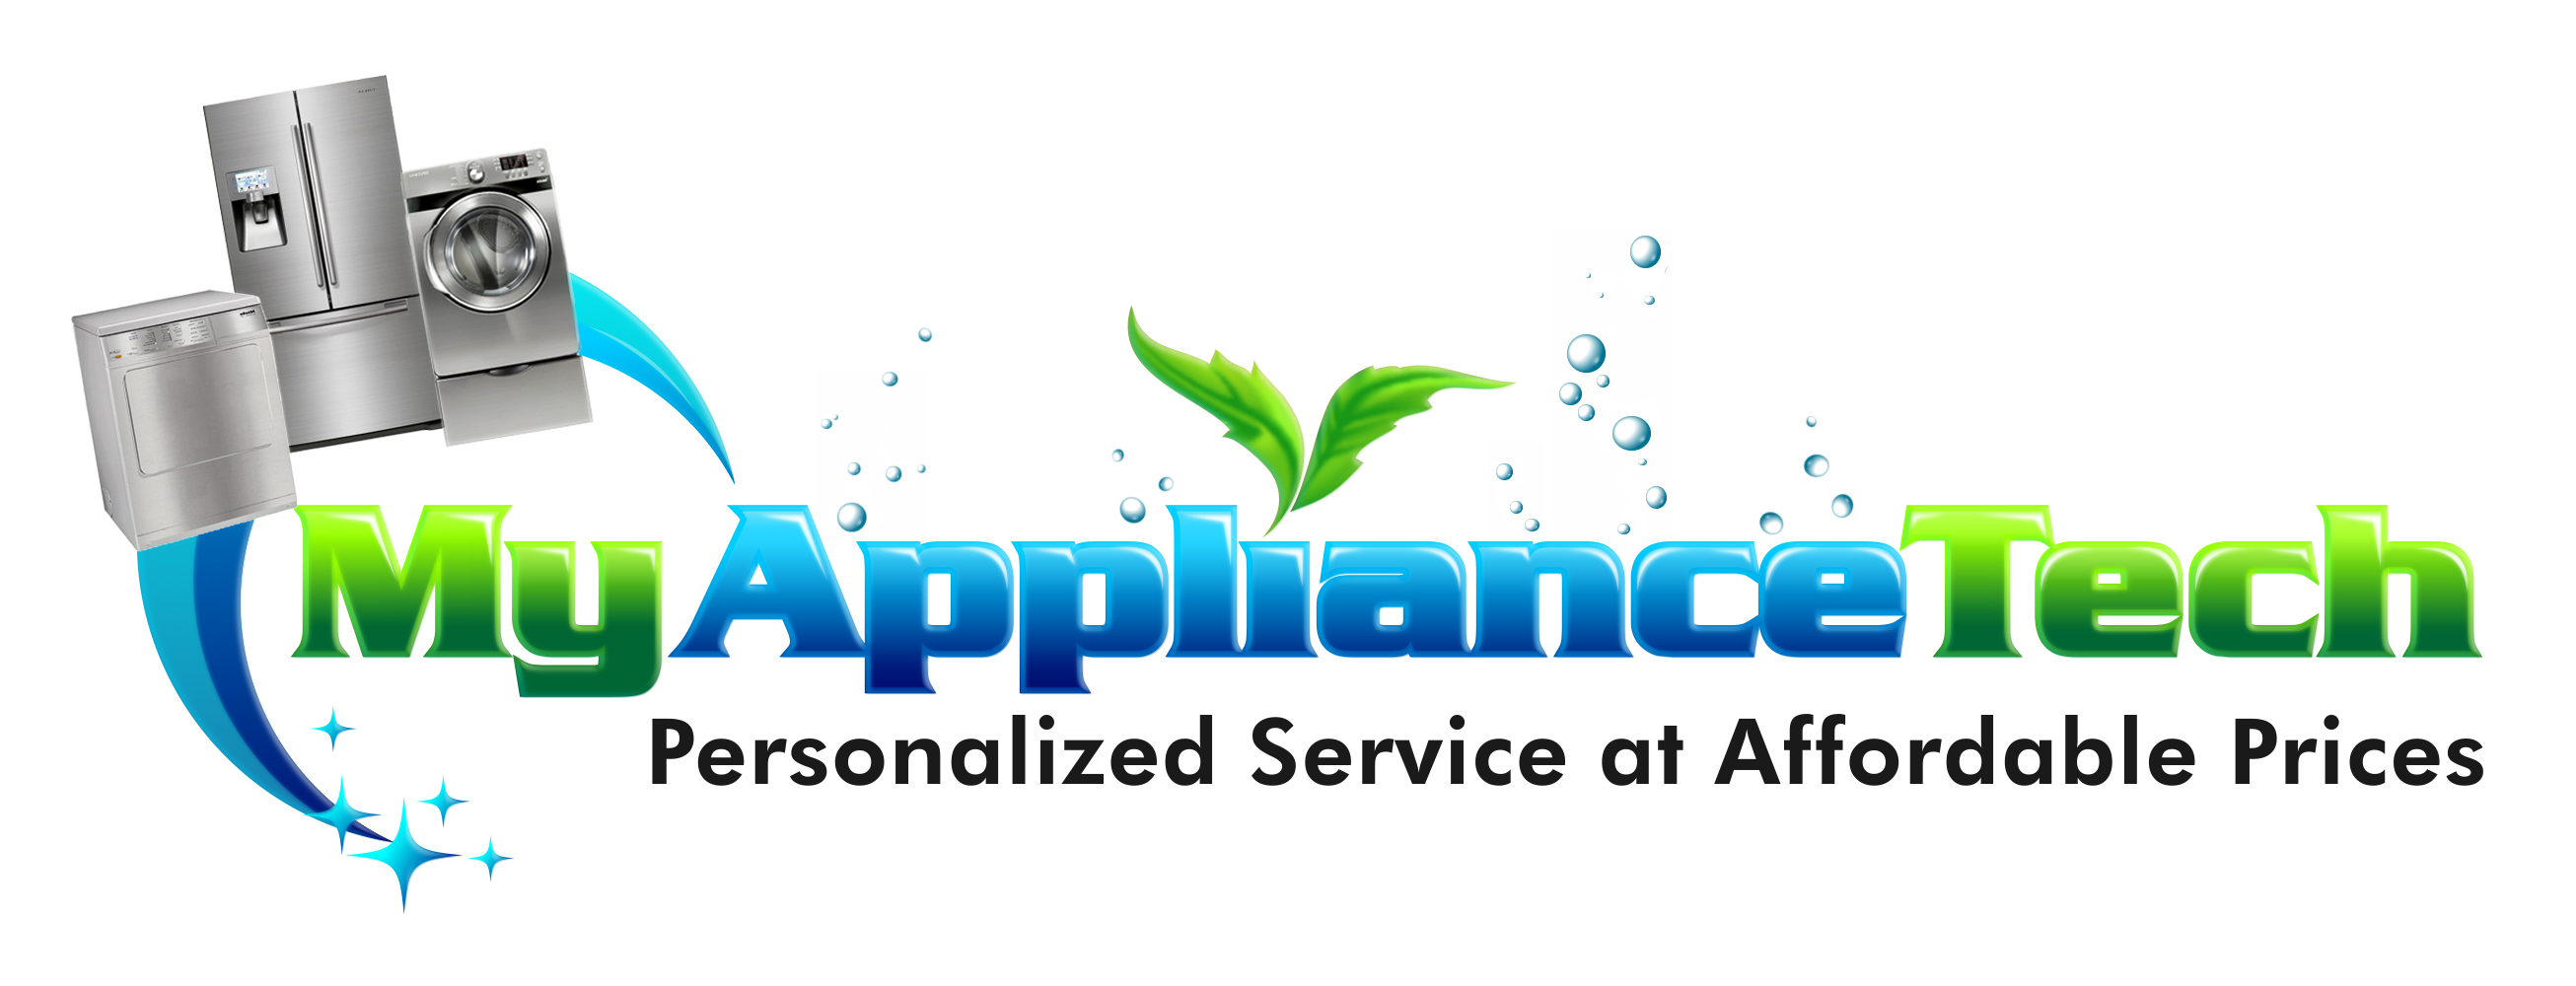 Appliance repair services in Palm Beach, Broward, & Dade counties